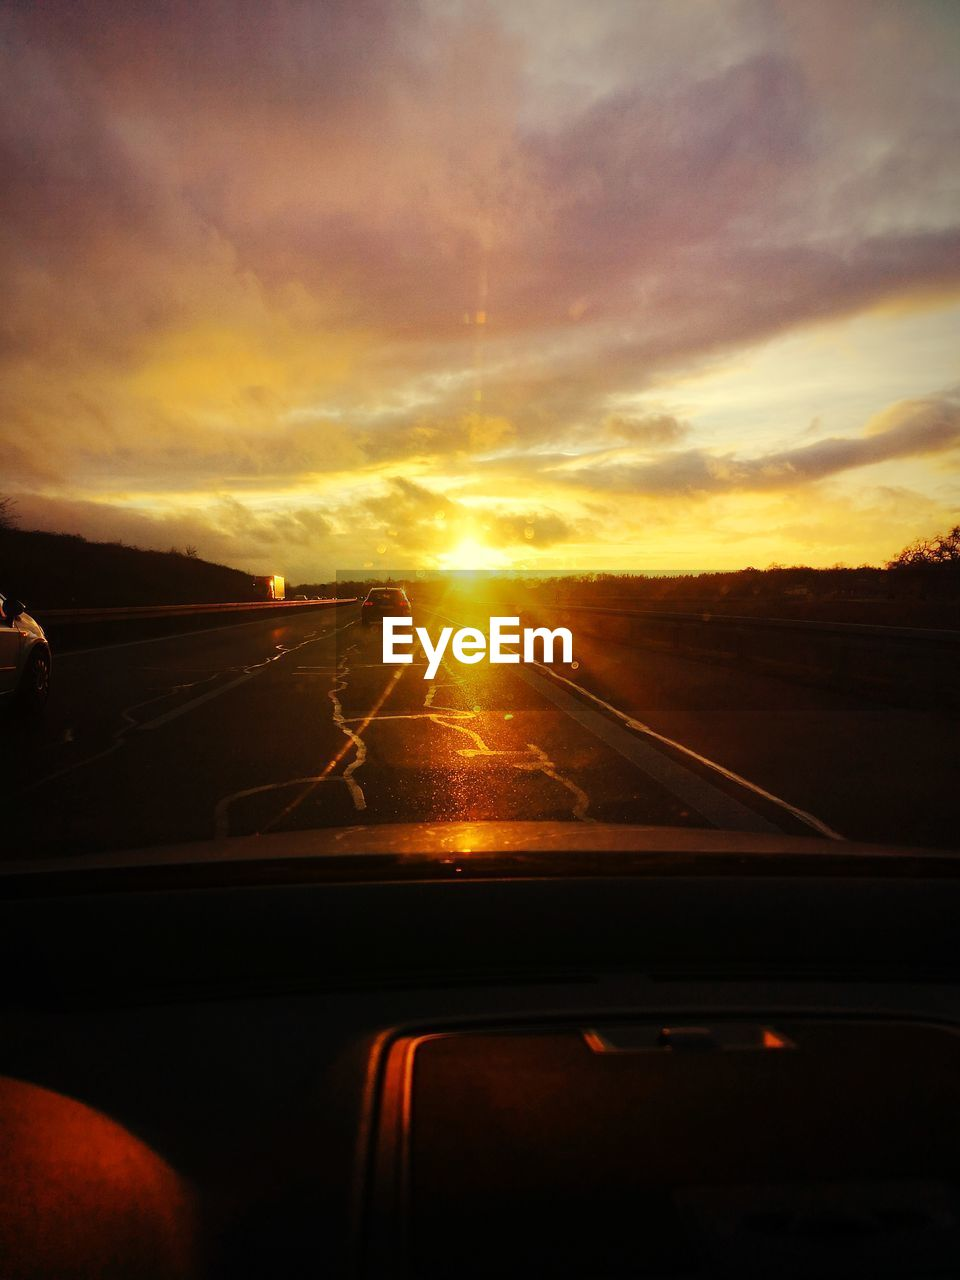 sunset, sky, car, vehicle interior, transportation, mode of transportation, glass - material, motor vehicle, sun, transparent, cloud - sky, nature, car interior, land vehicle, orange color, windshield, sunlight, road, lens flare, on the move, no people, outdoors, car point of view, road trip